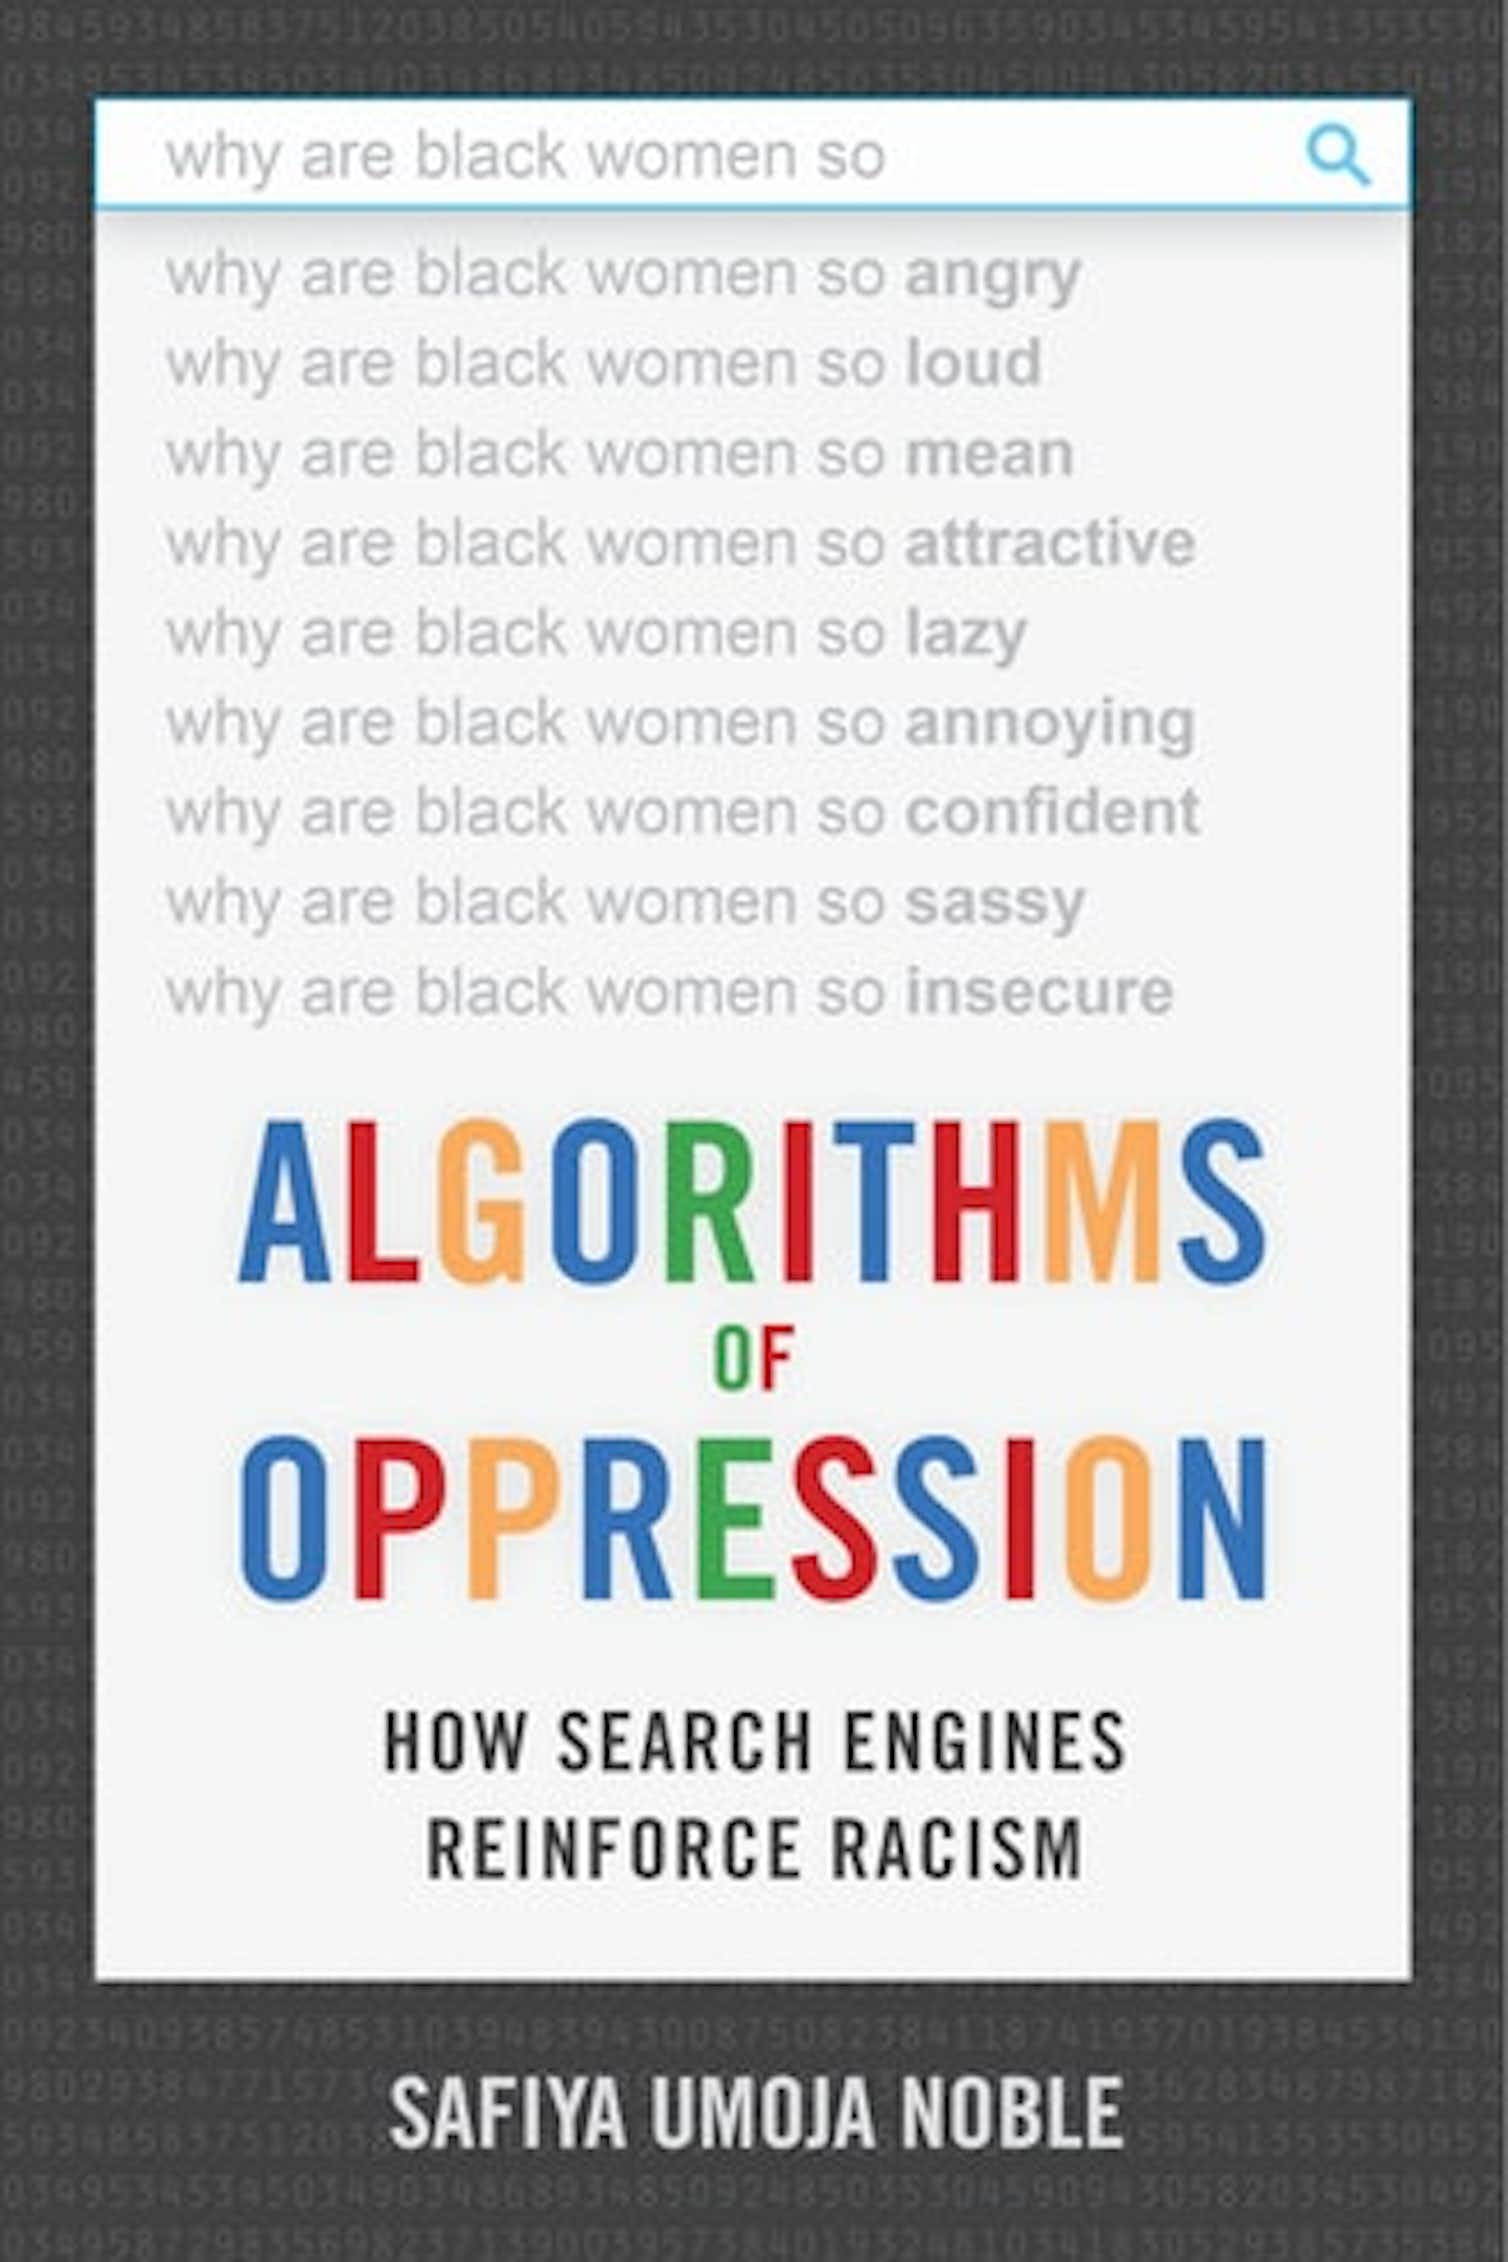 Safiya Noble's 2018 book, 'Algorithms of Oppression.' Credit: NYU Press